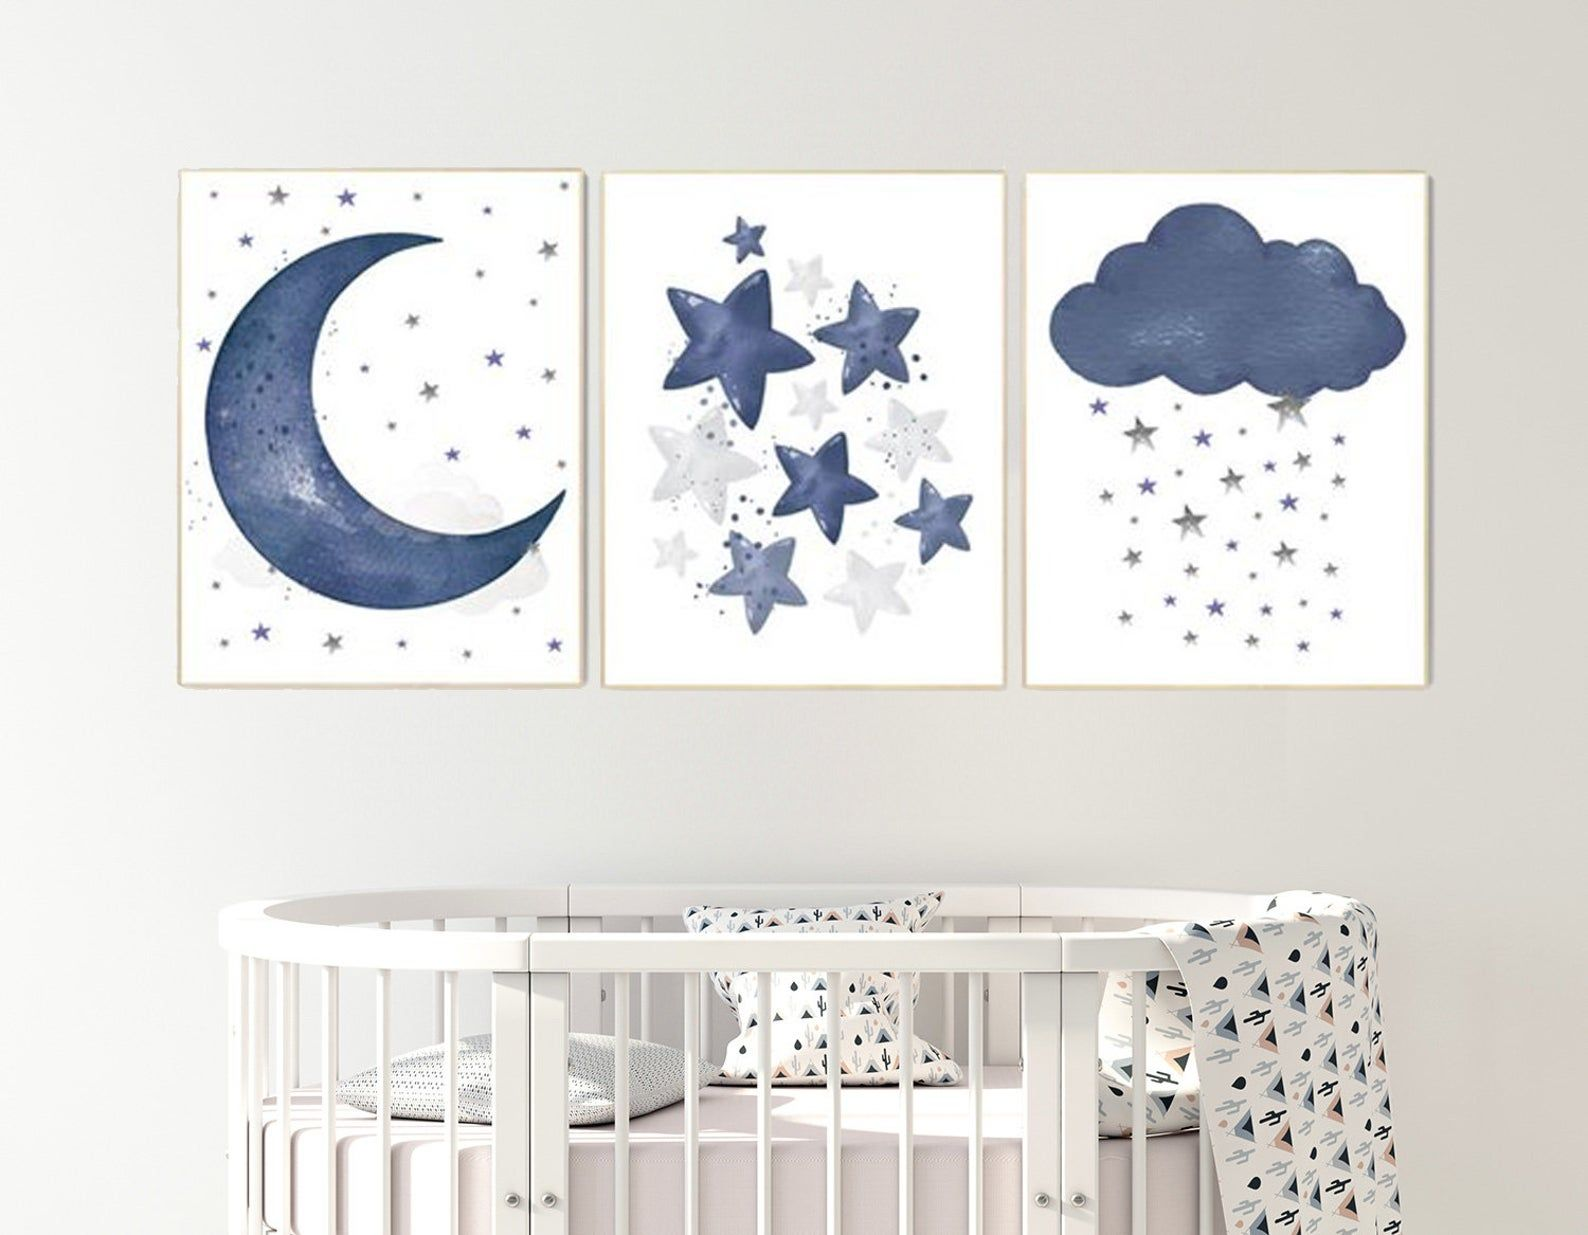 Navy Nursery Decor Moon Cloud And Stars Nursery Decor Boy Etsy Baby Room Wall Art Navy Nursery Decor Nursery Decor Boy